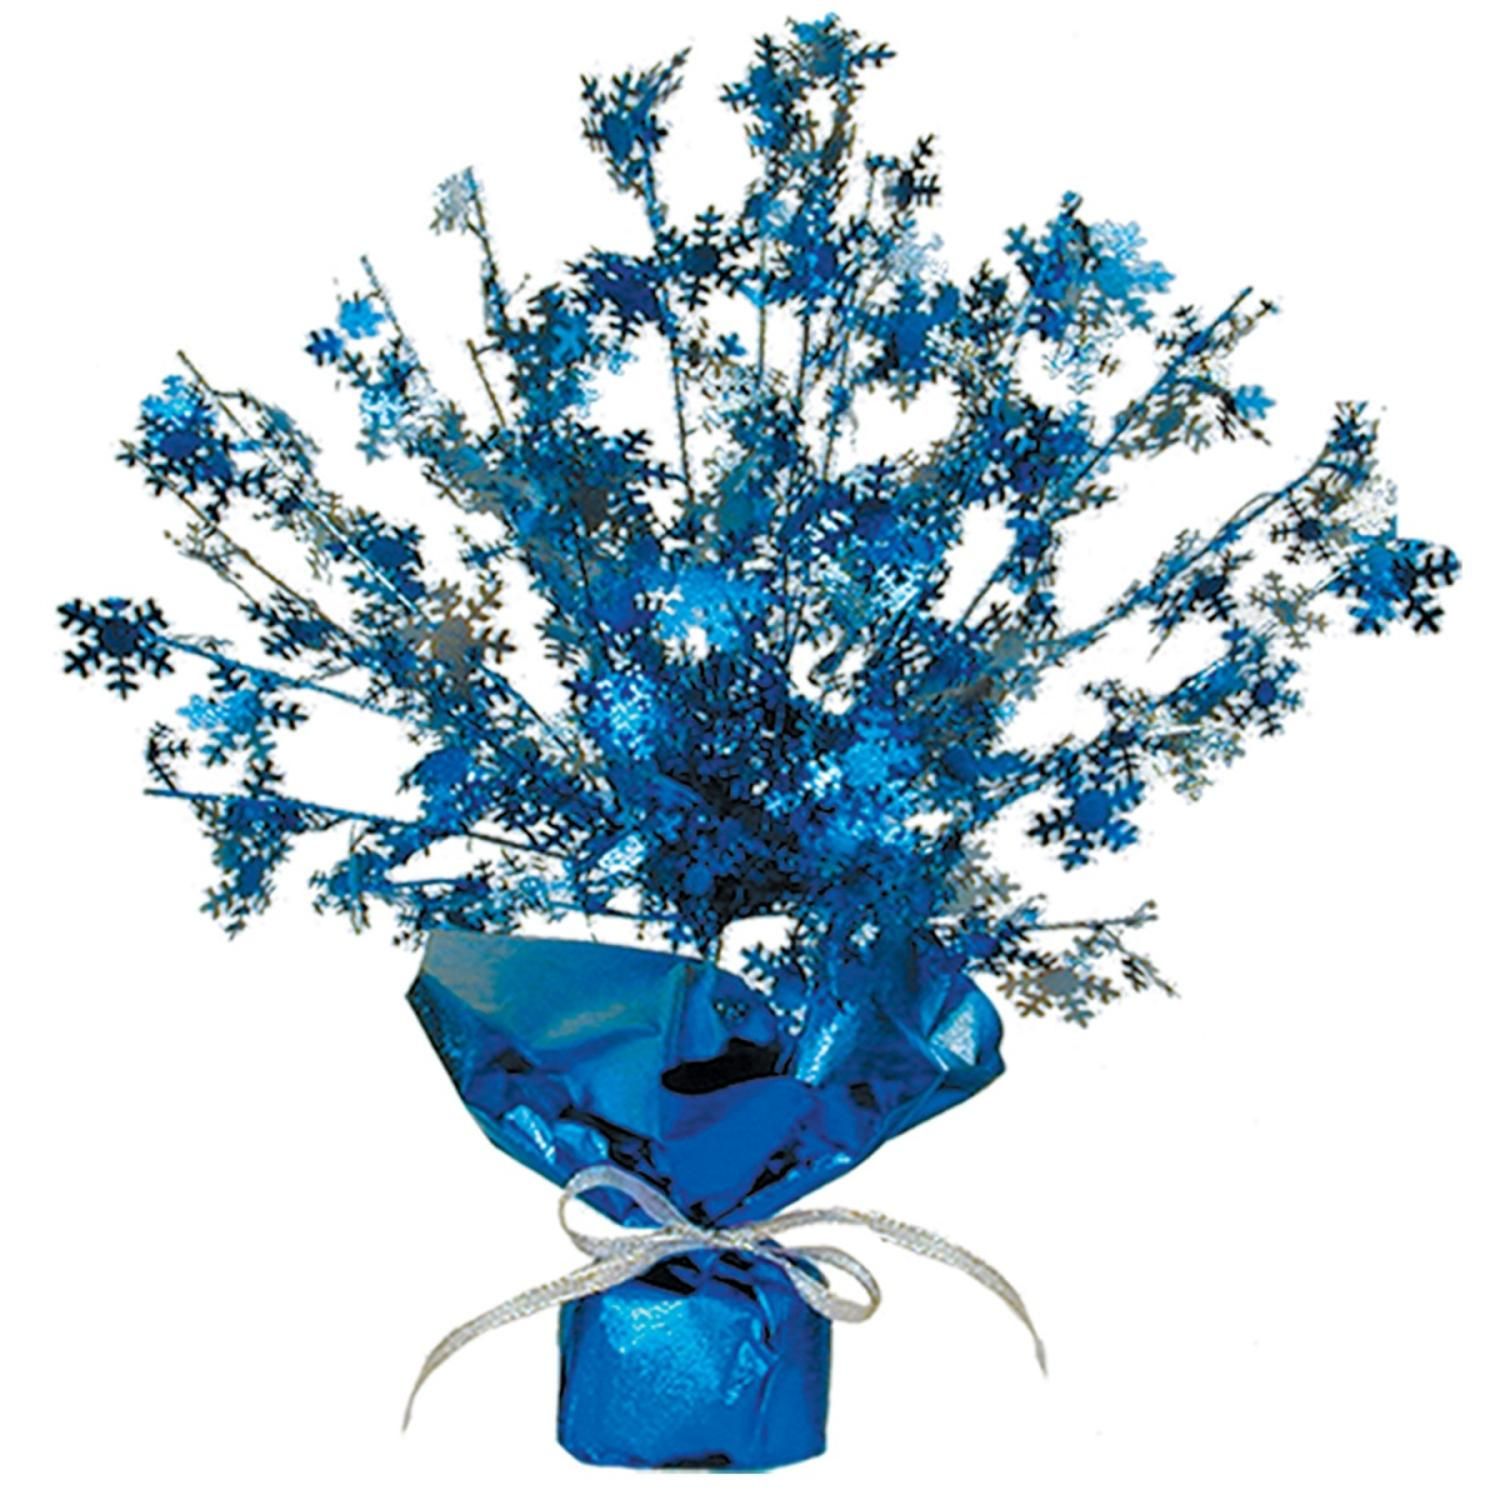 Club Pack of 12 Blue and Silver Metallic Gleam 'N Burst Snowflake Centerpiece Christmas Decorations 15""